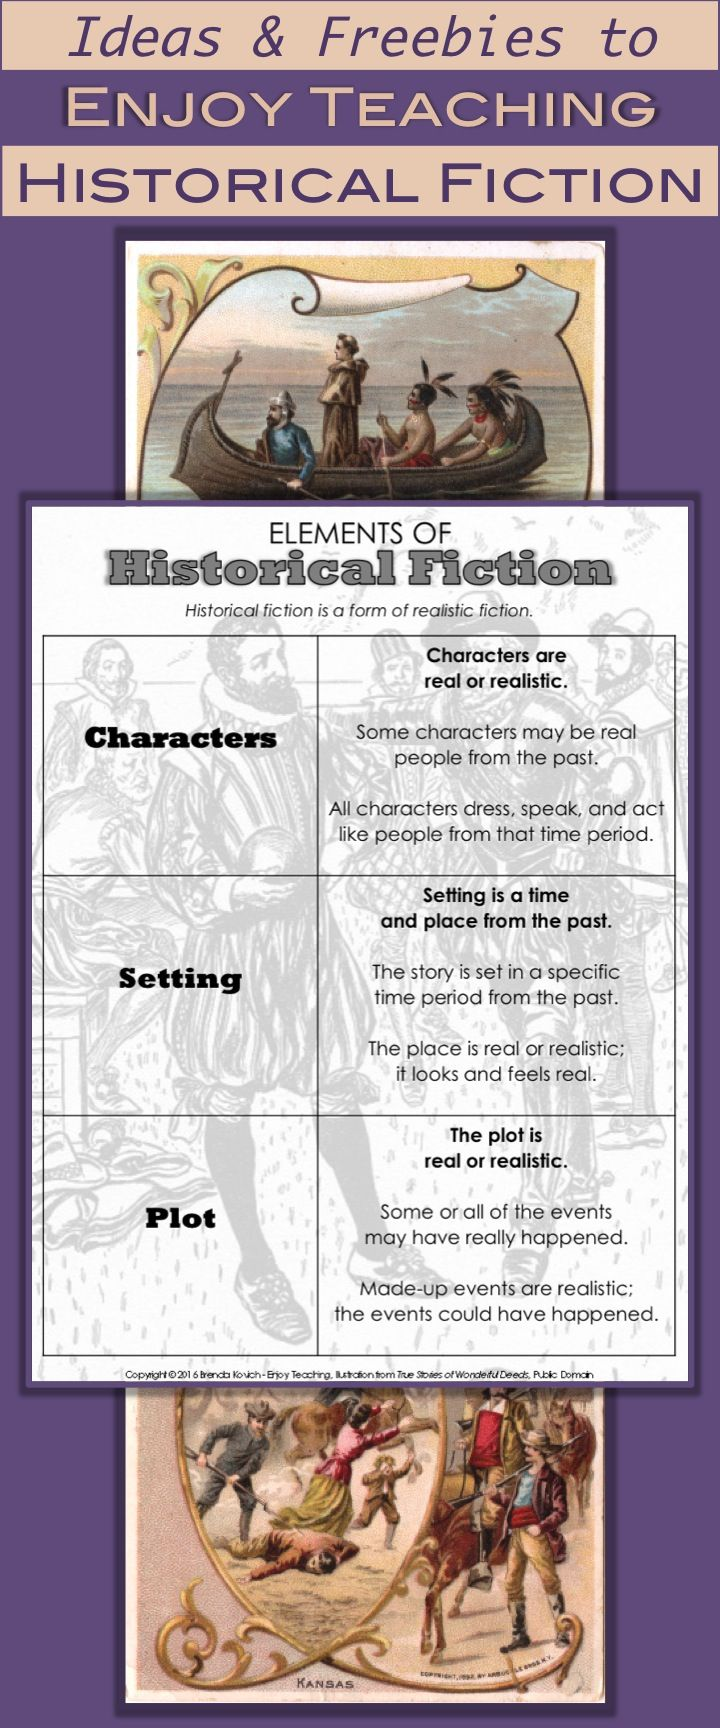 Bring history to life with historical fiction. Grab this free infographic (and some great ideas for teaching historical fiction) at Enjoy-Teaching.com. Visit weekly for activities, ideas, and links for third, fourth, or fifth grade students.